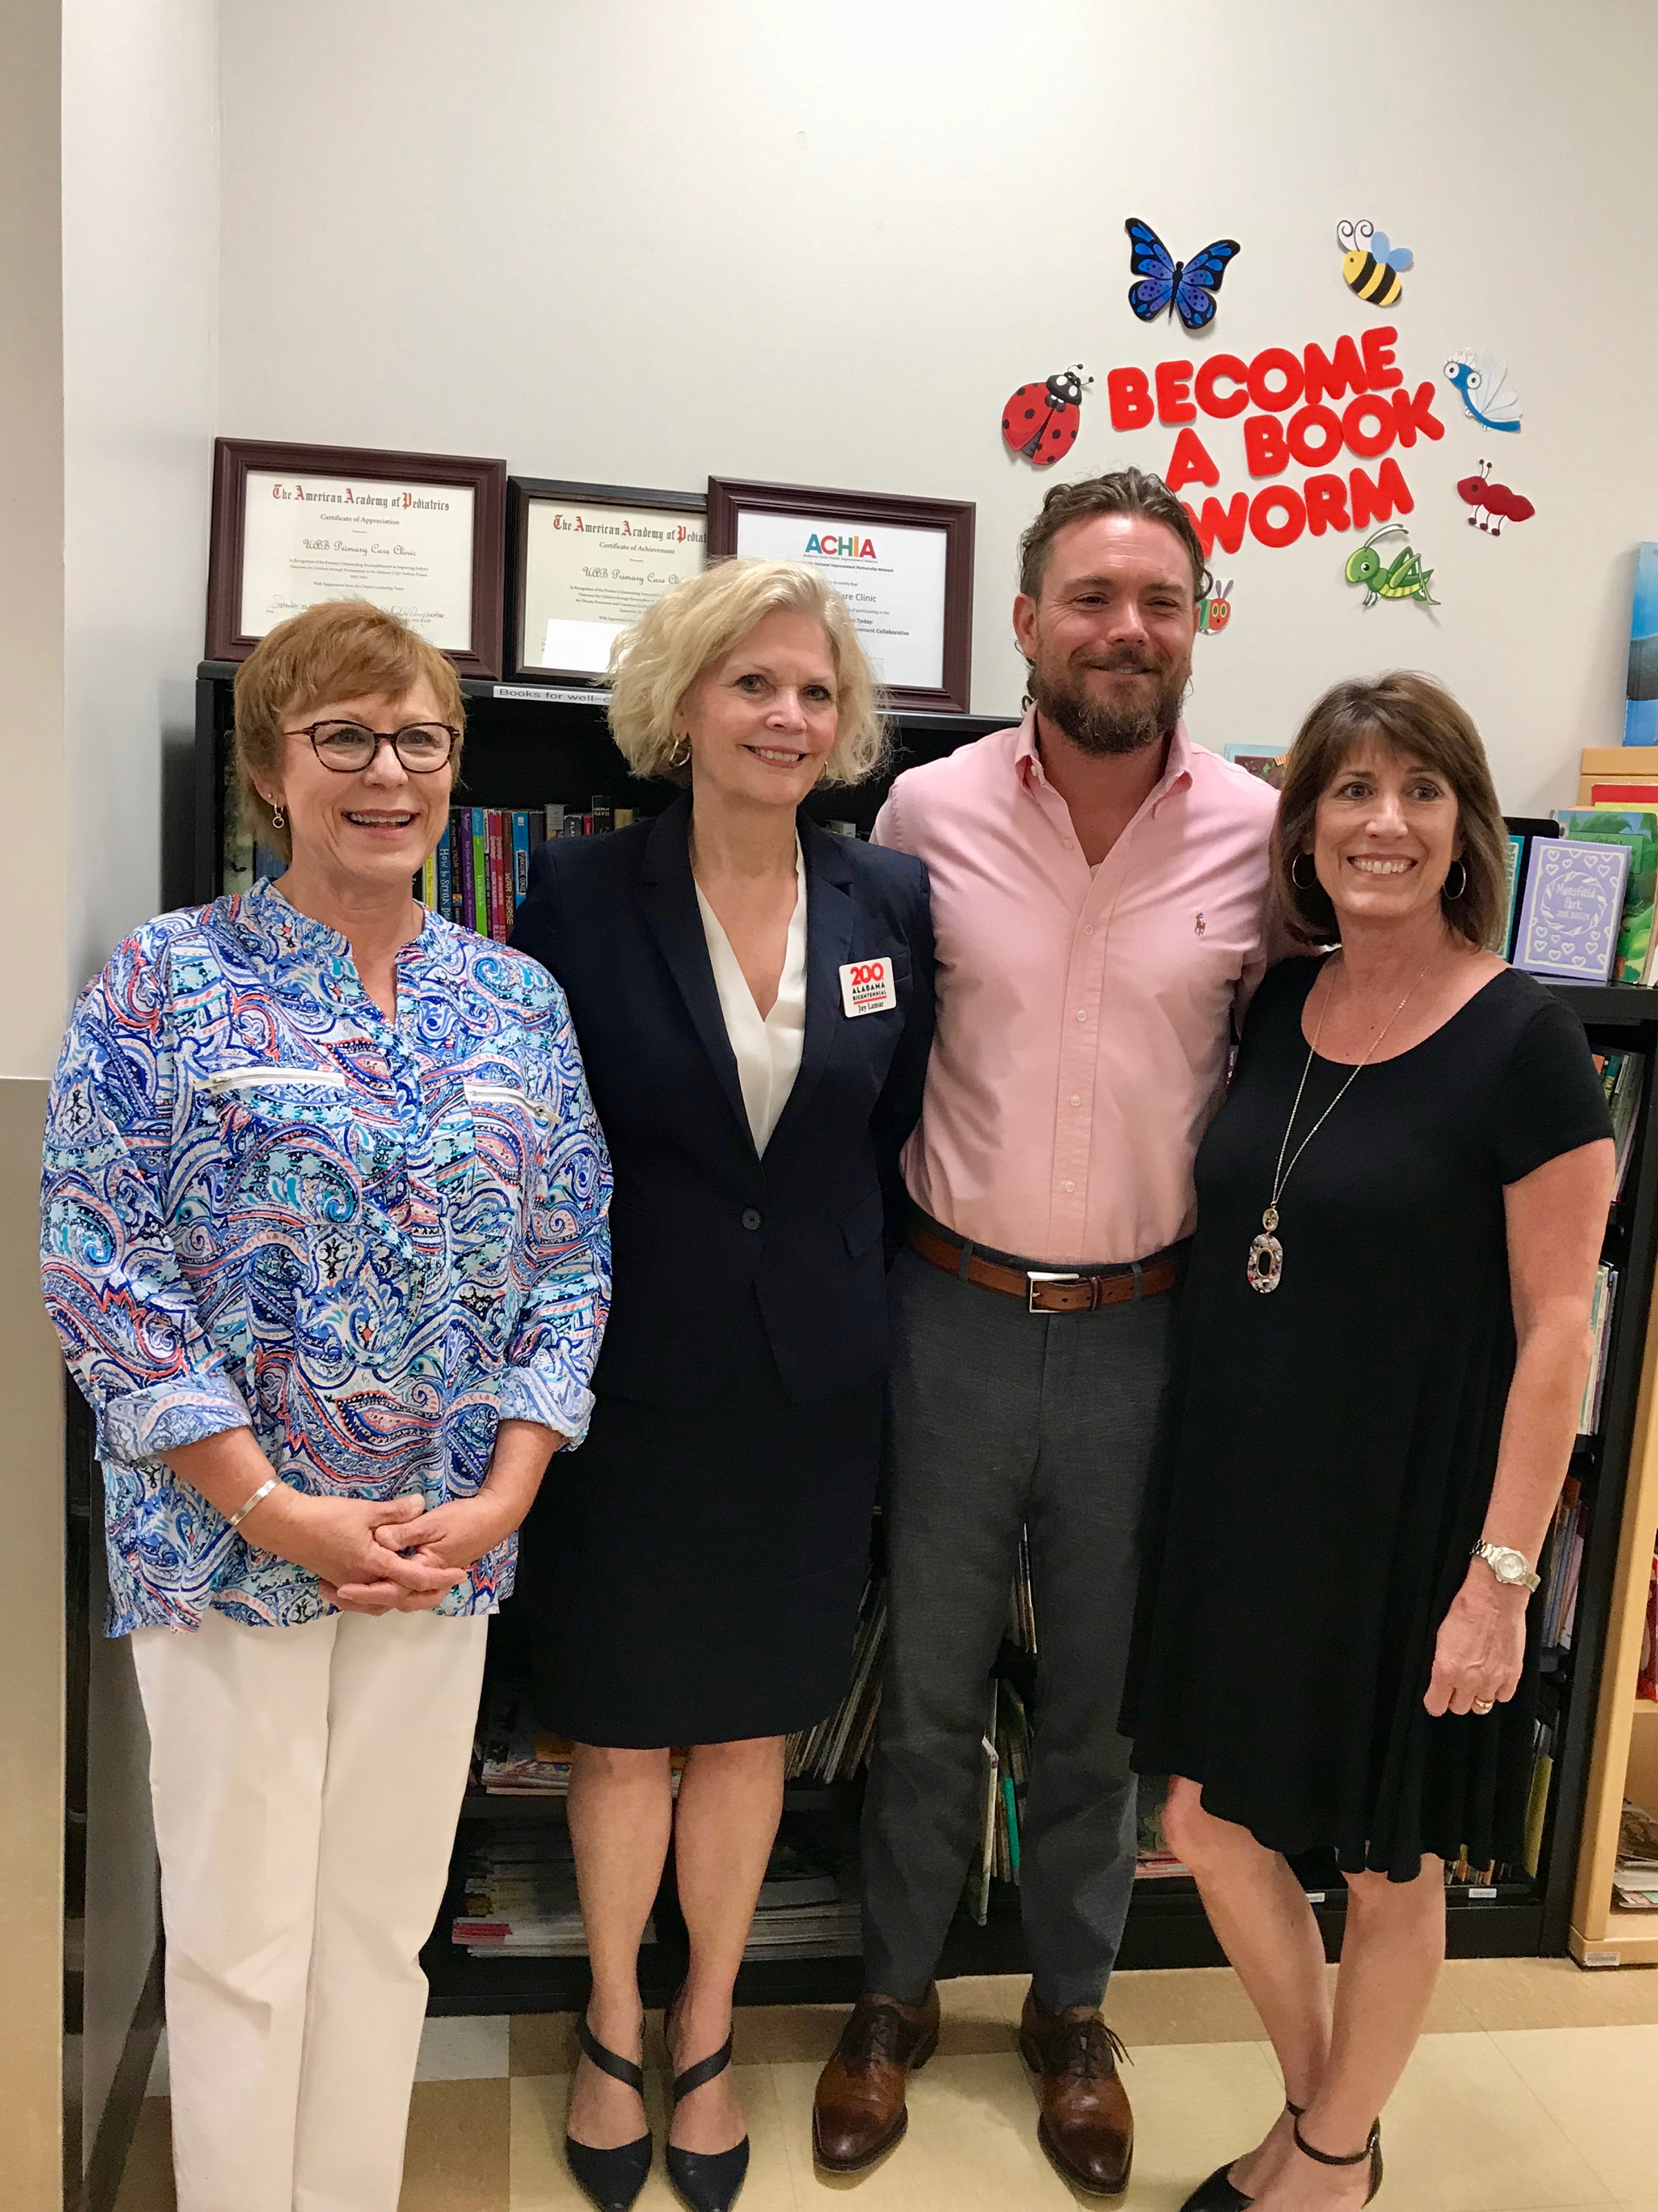 Pictured - Polly mclure, reach out and read-alabama; jay lamar, alabama bicentennial commission; clayne crawford, clayne crawford foundation; Carol maxwell, vulcan materials company